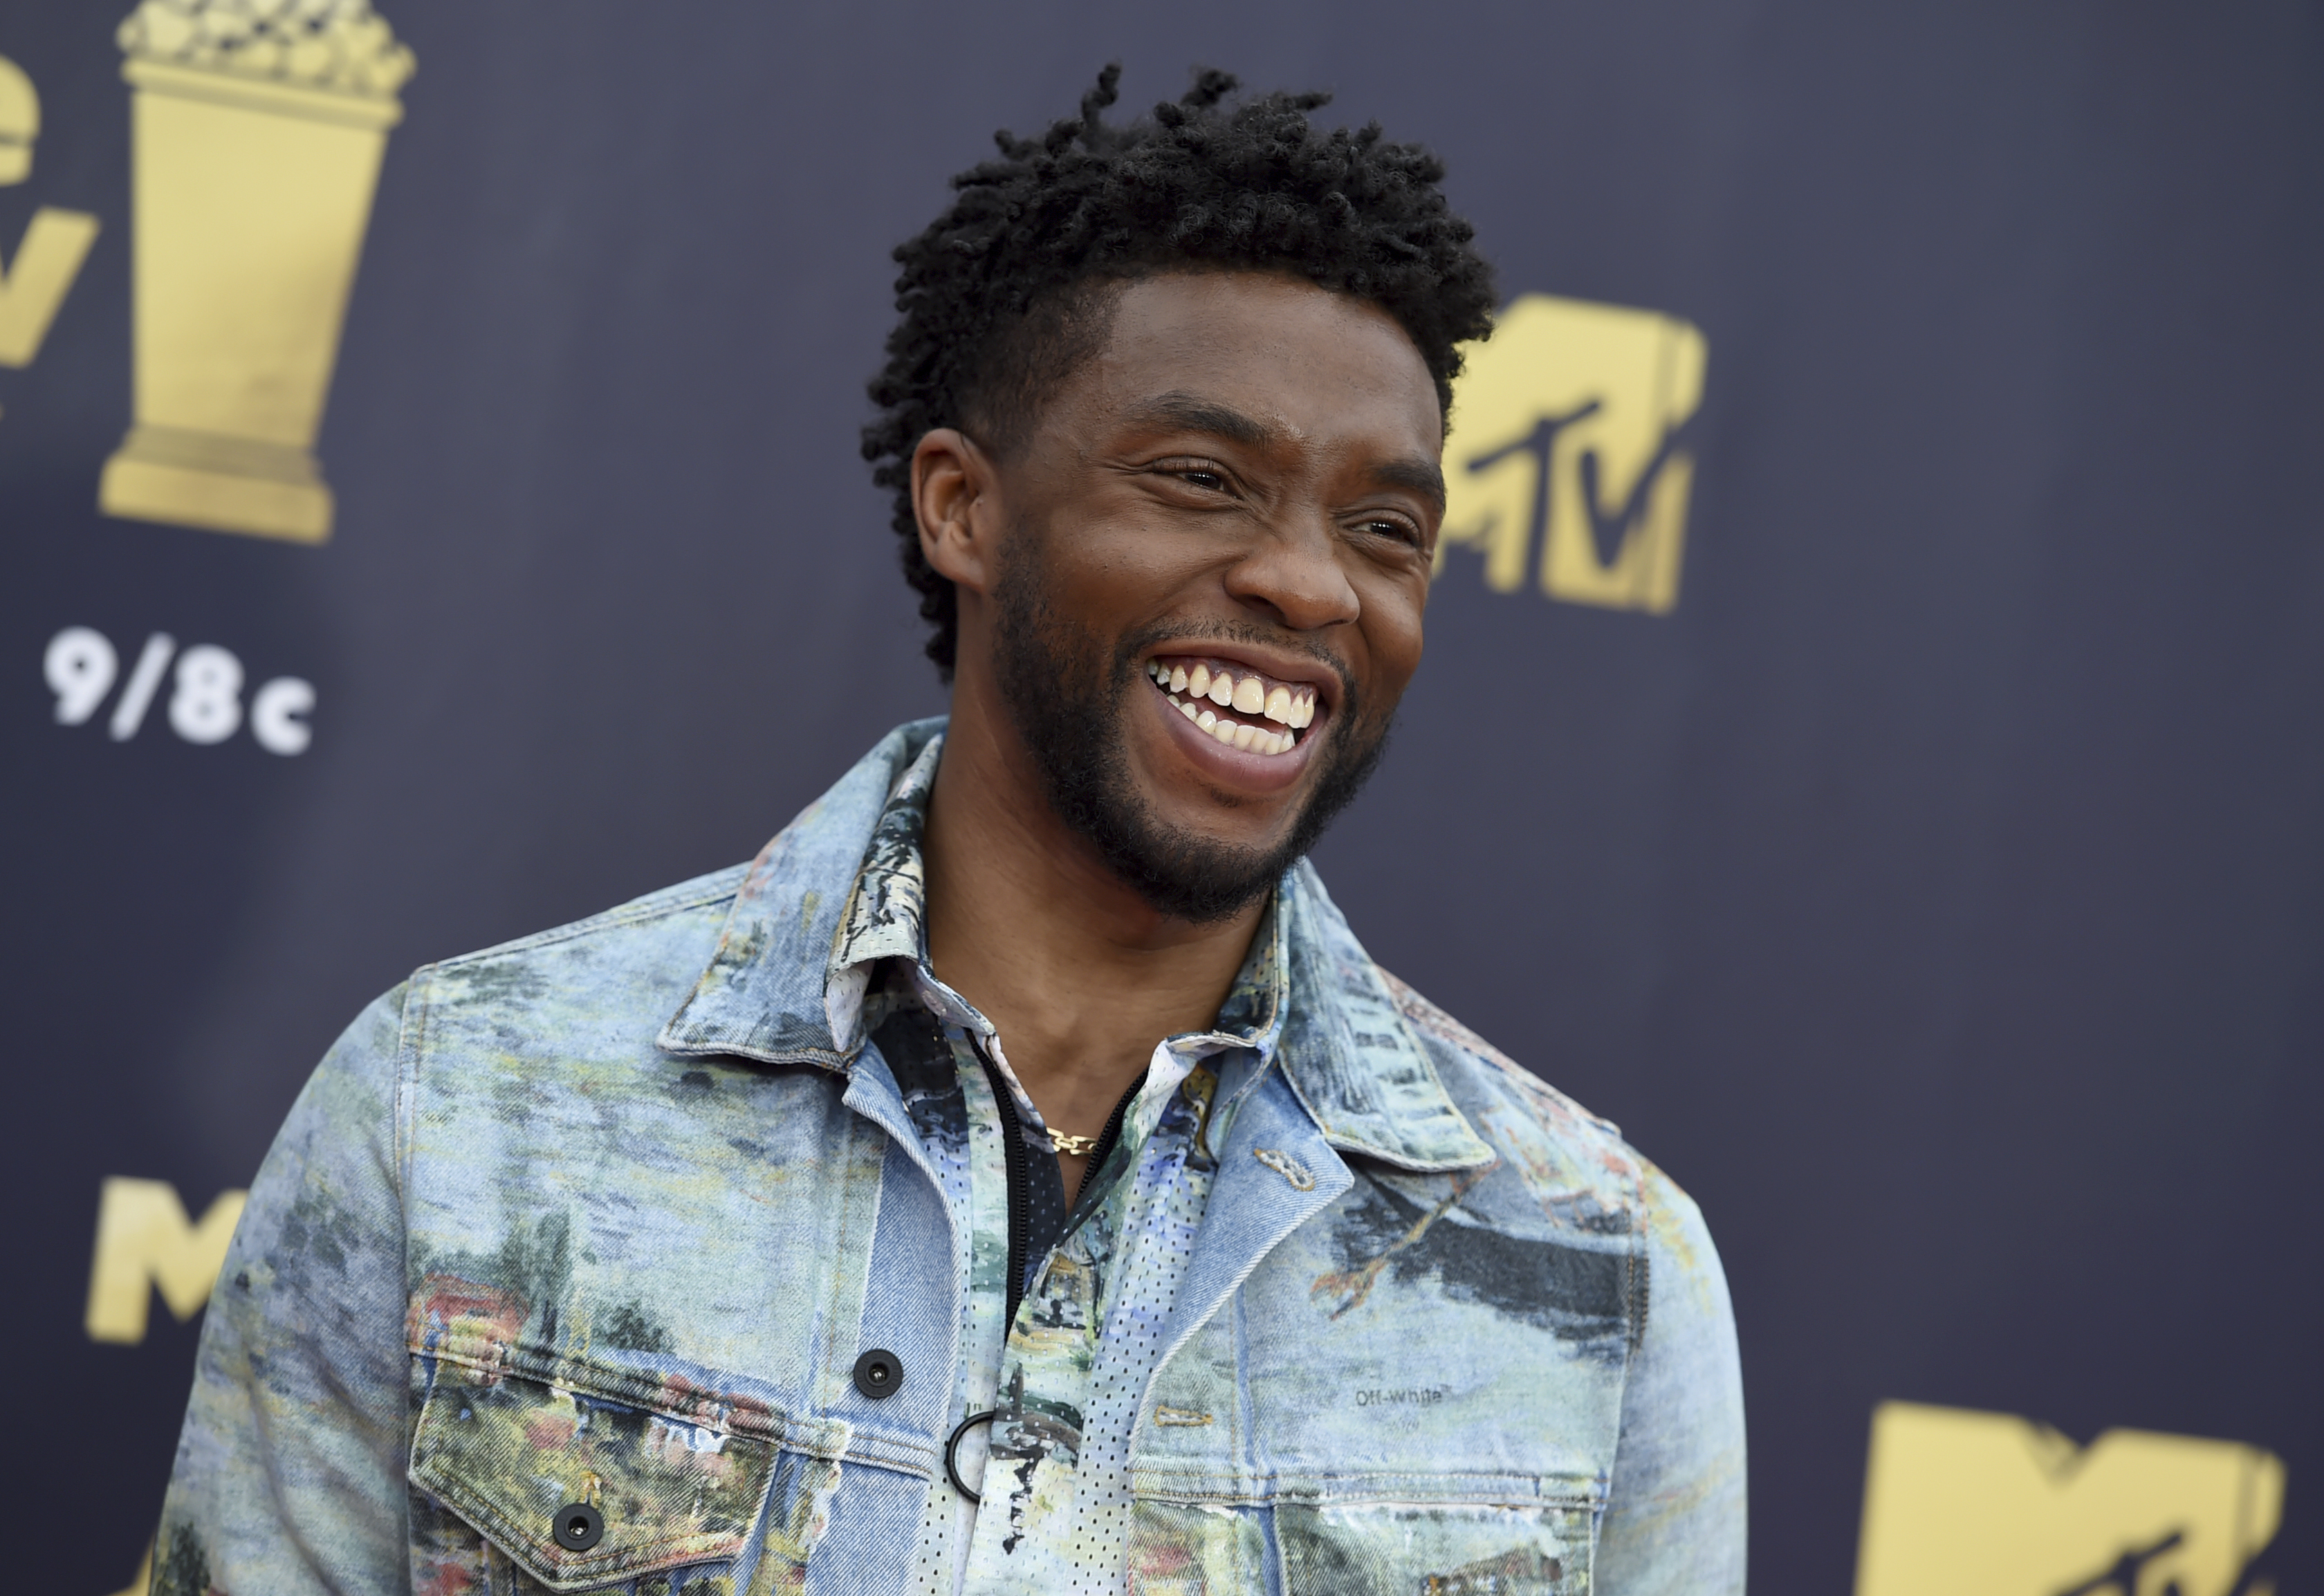 Chadwick Boseman Who Embodied Black Icons Dies Of Cancer At 43 The Boston Globe